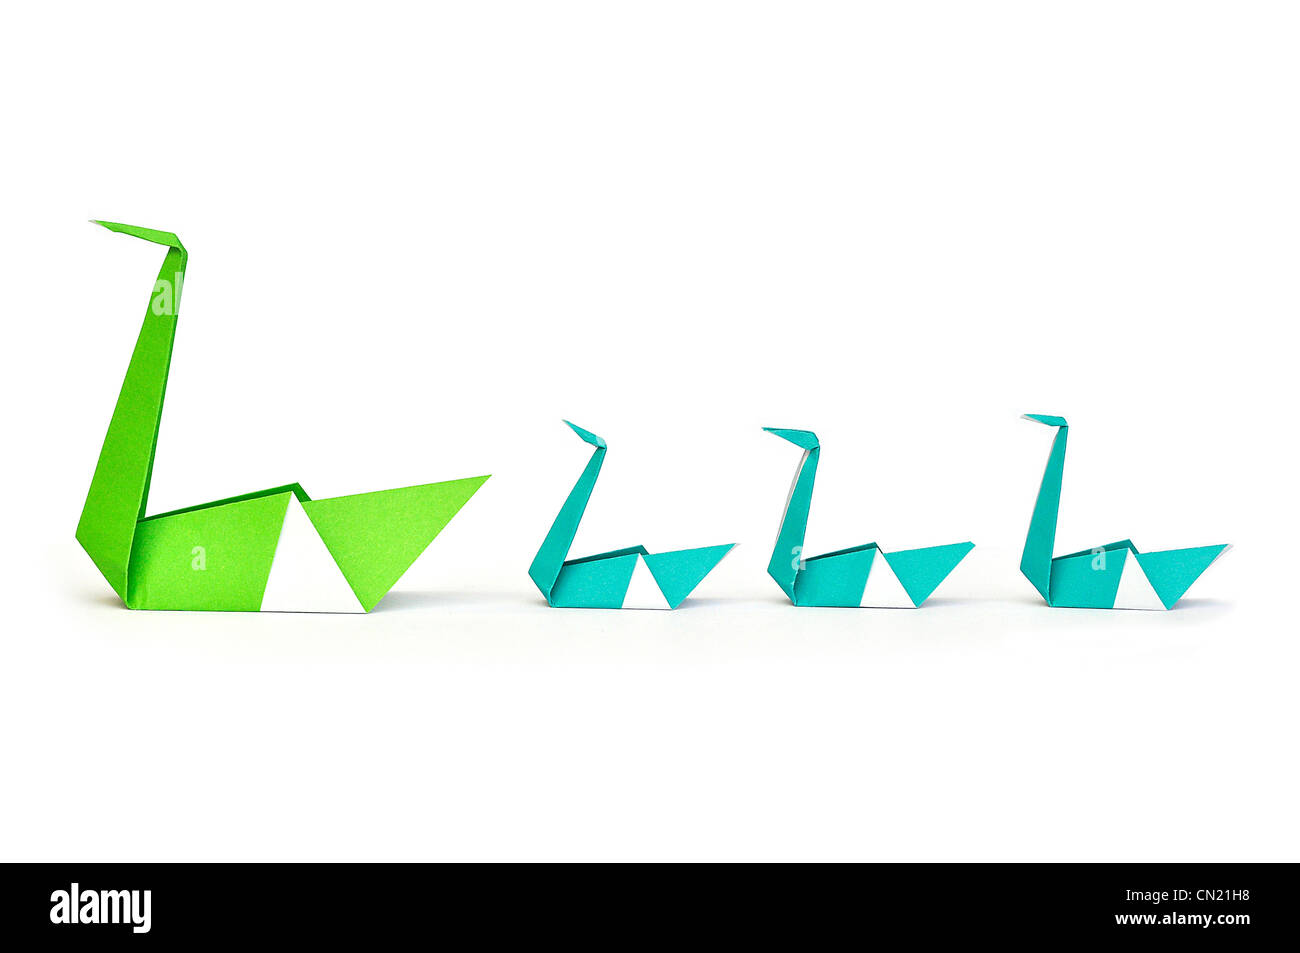 Origami Swan Stock Photos Images Alamy Pics Diagrams Green Paper Leading Three Small Baby Swans Image